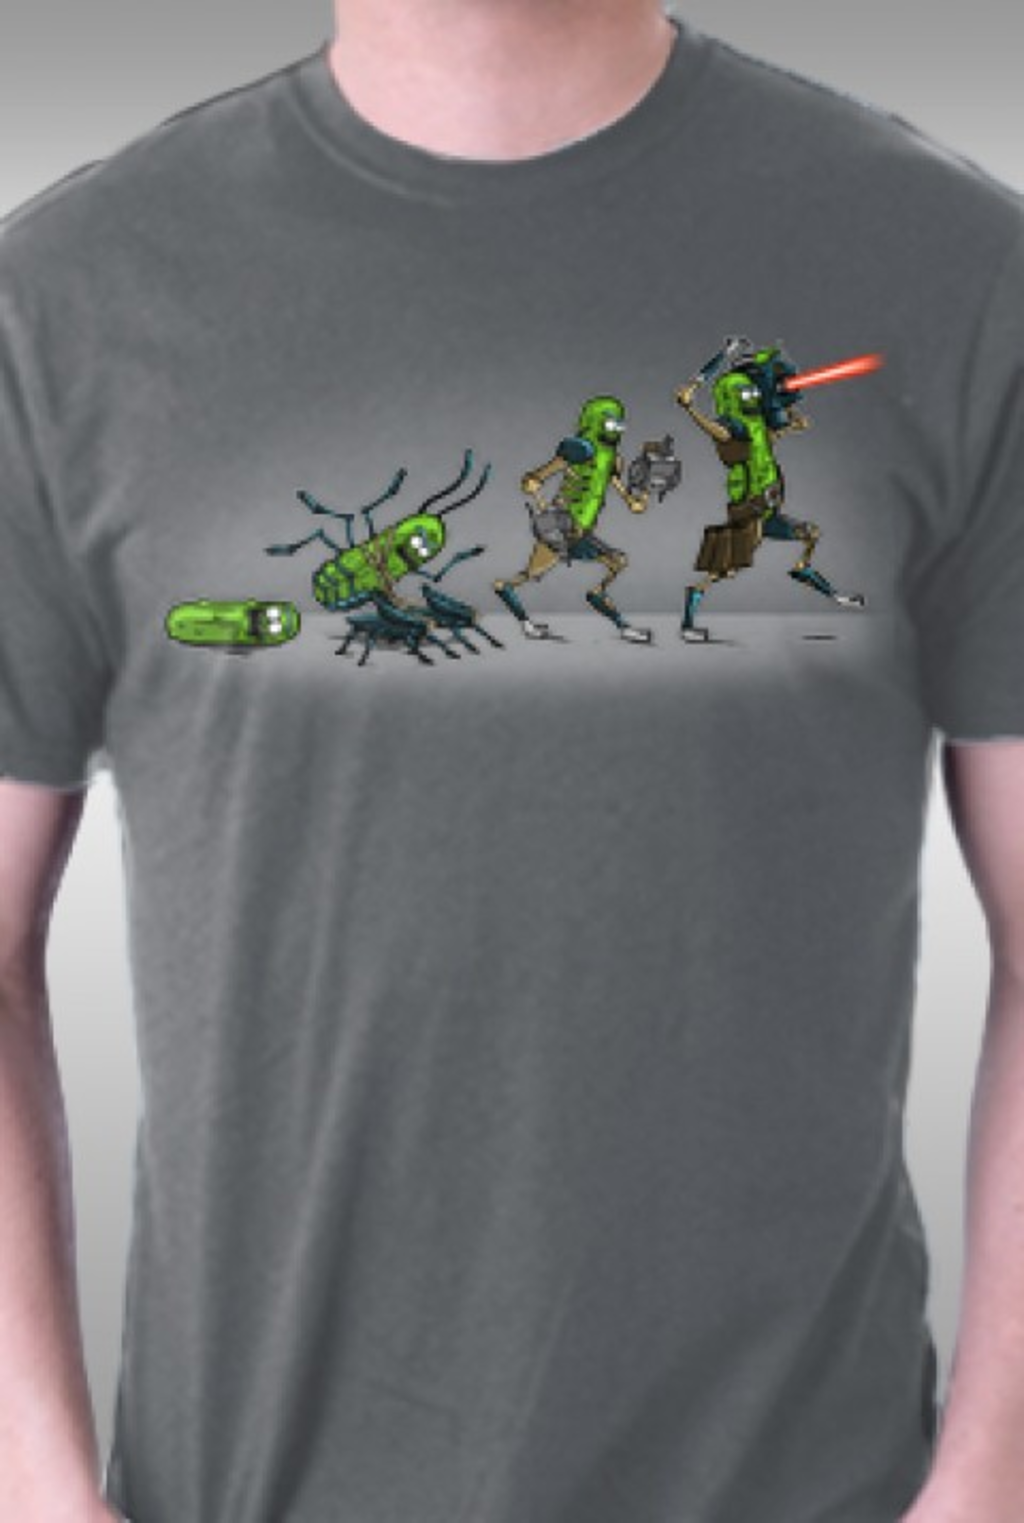 TeeFury: The Evolution of a Pickle